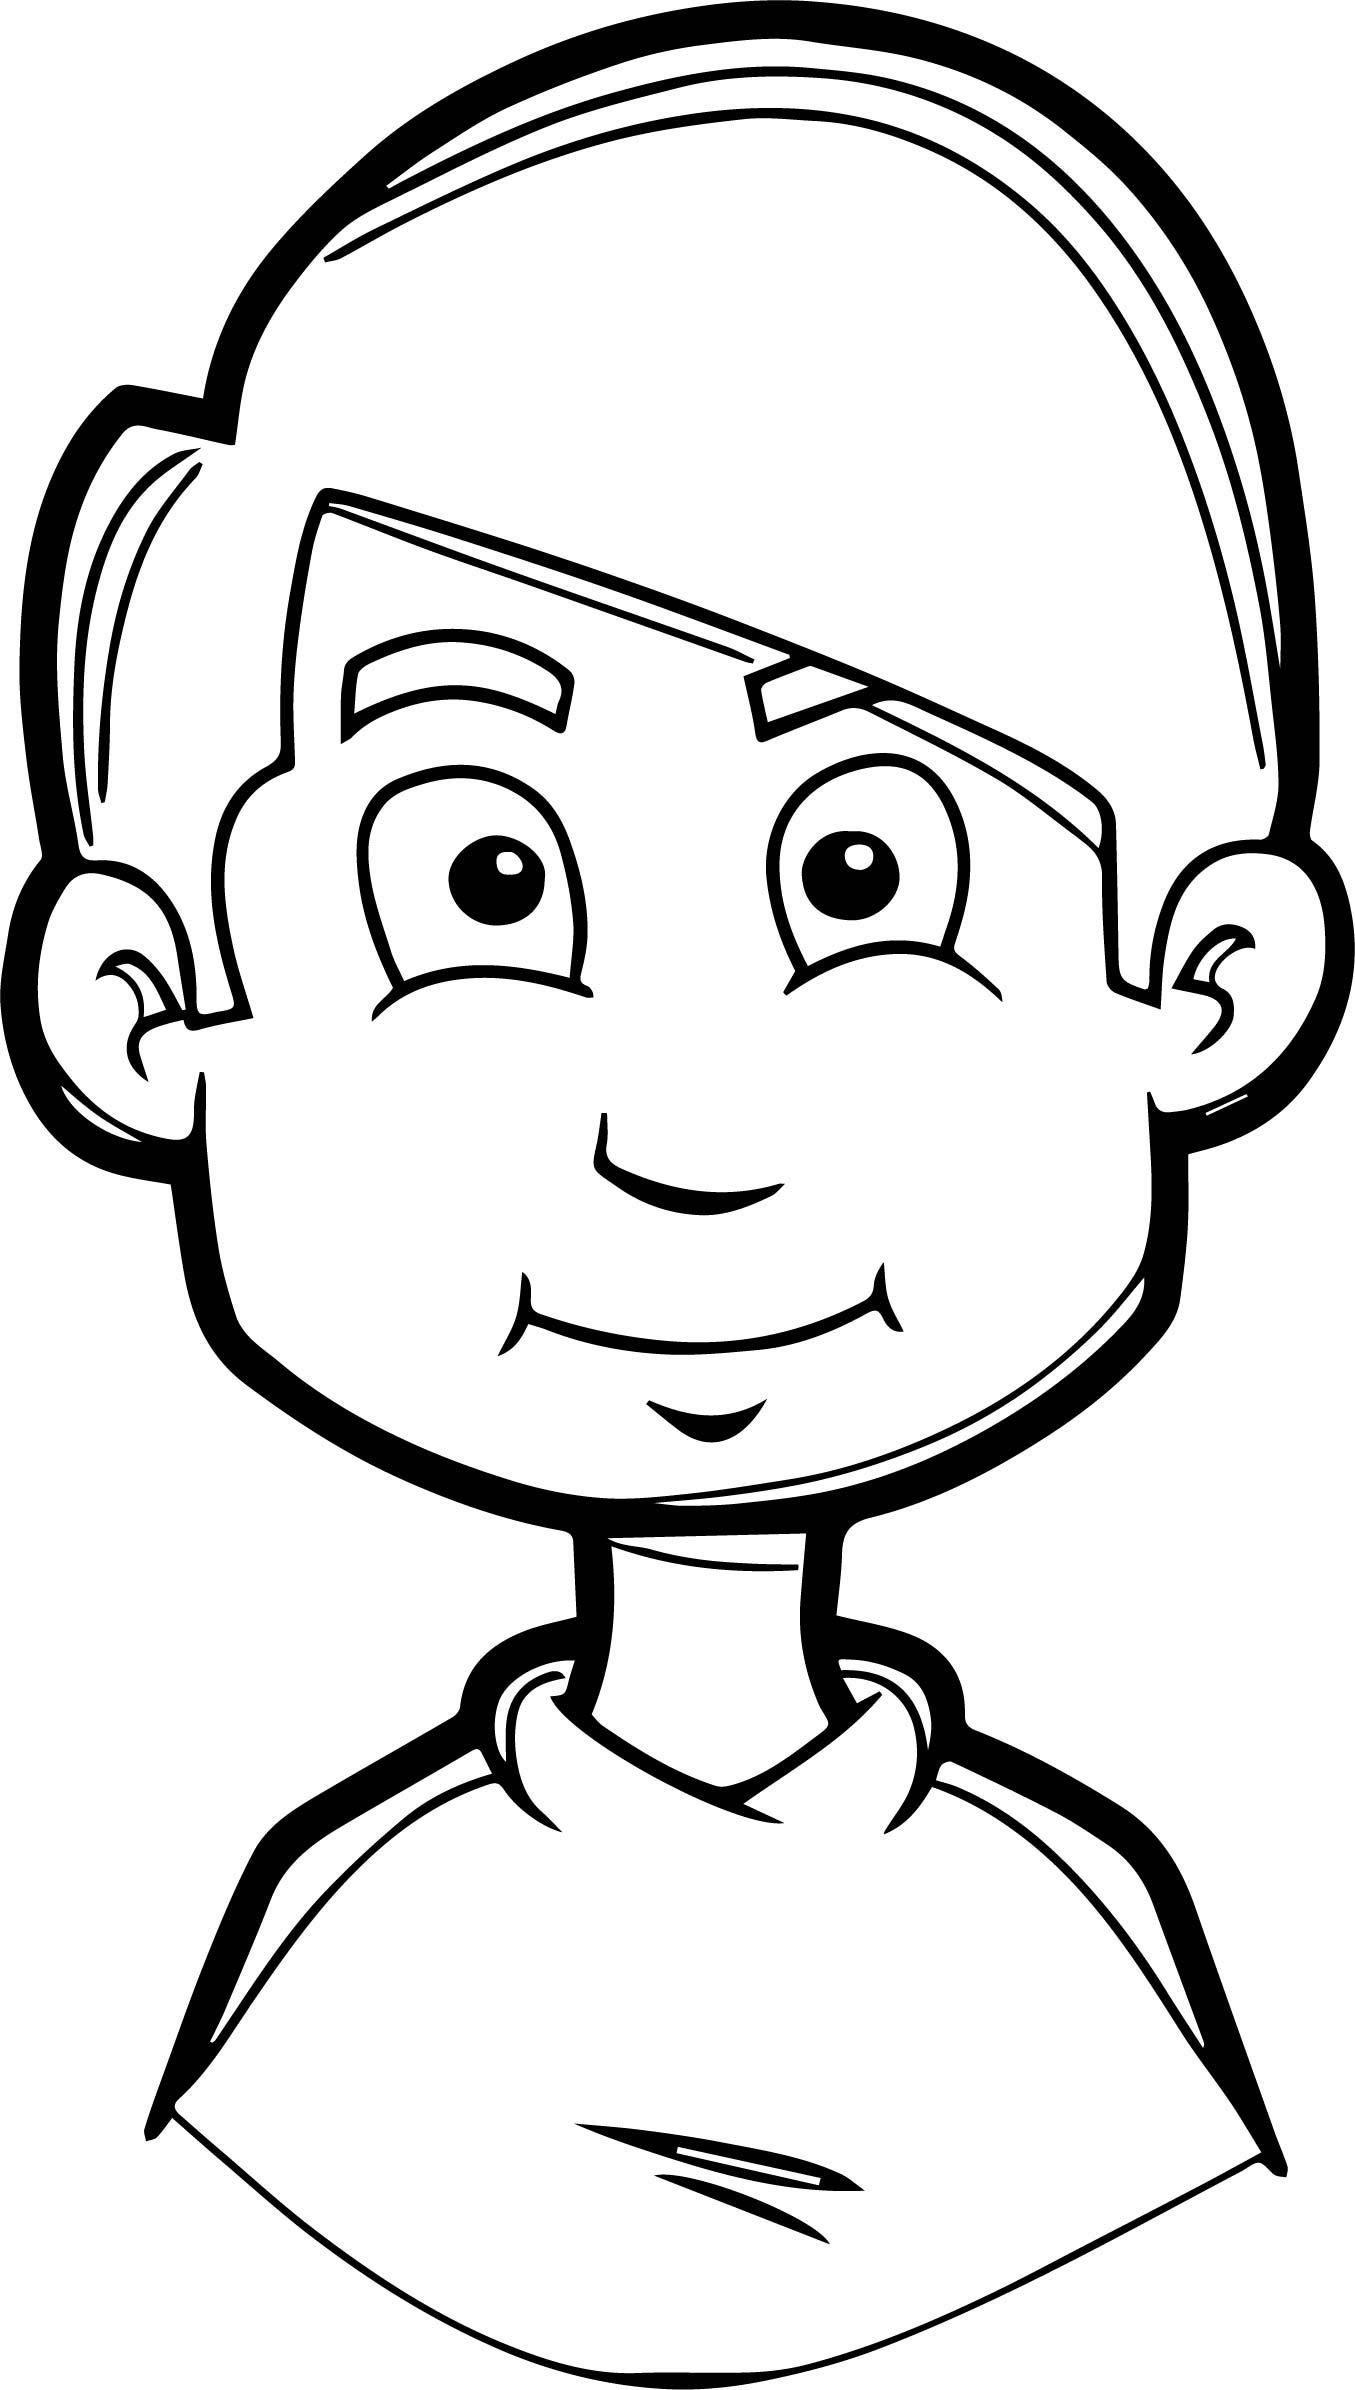 coloring page of a boy - boy soccer face coloring page